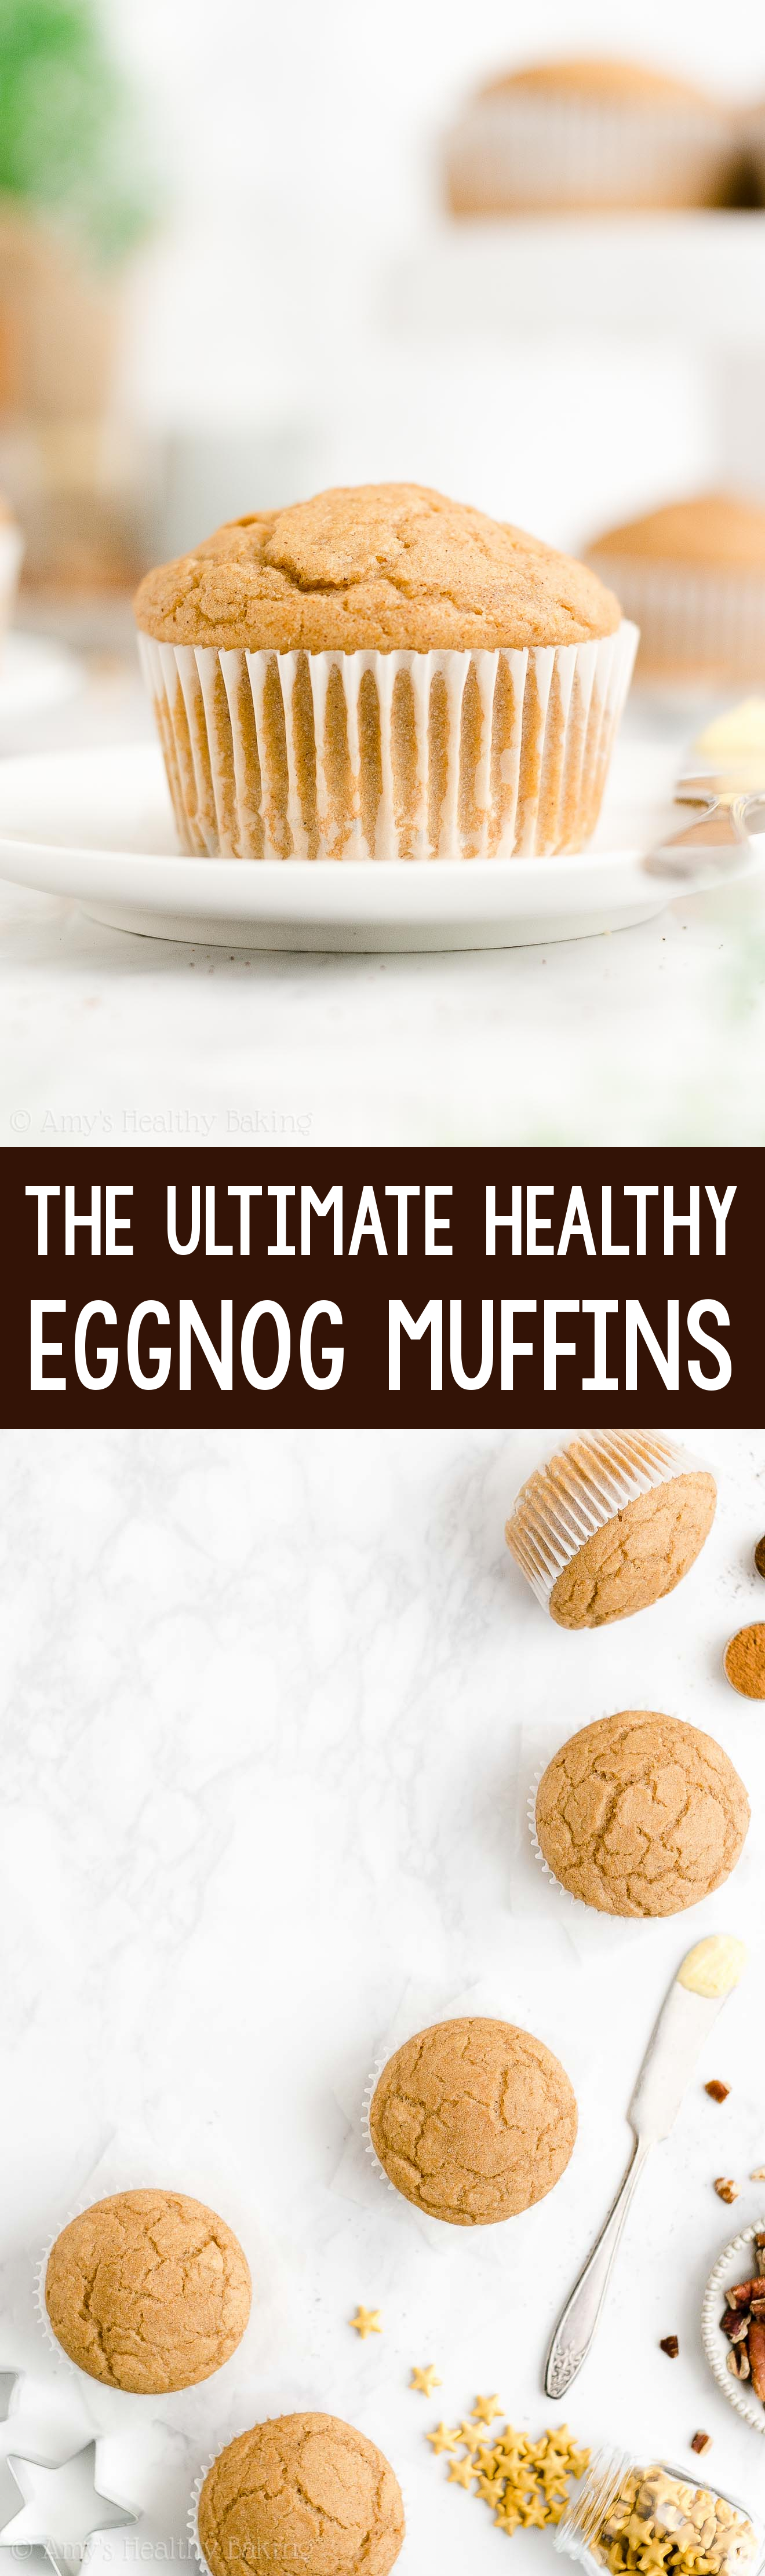 ULTIMATE Best Ever Easy Healthy Low Calorie Eggnog Muffins for Christmas Breakfast